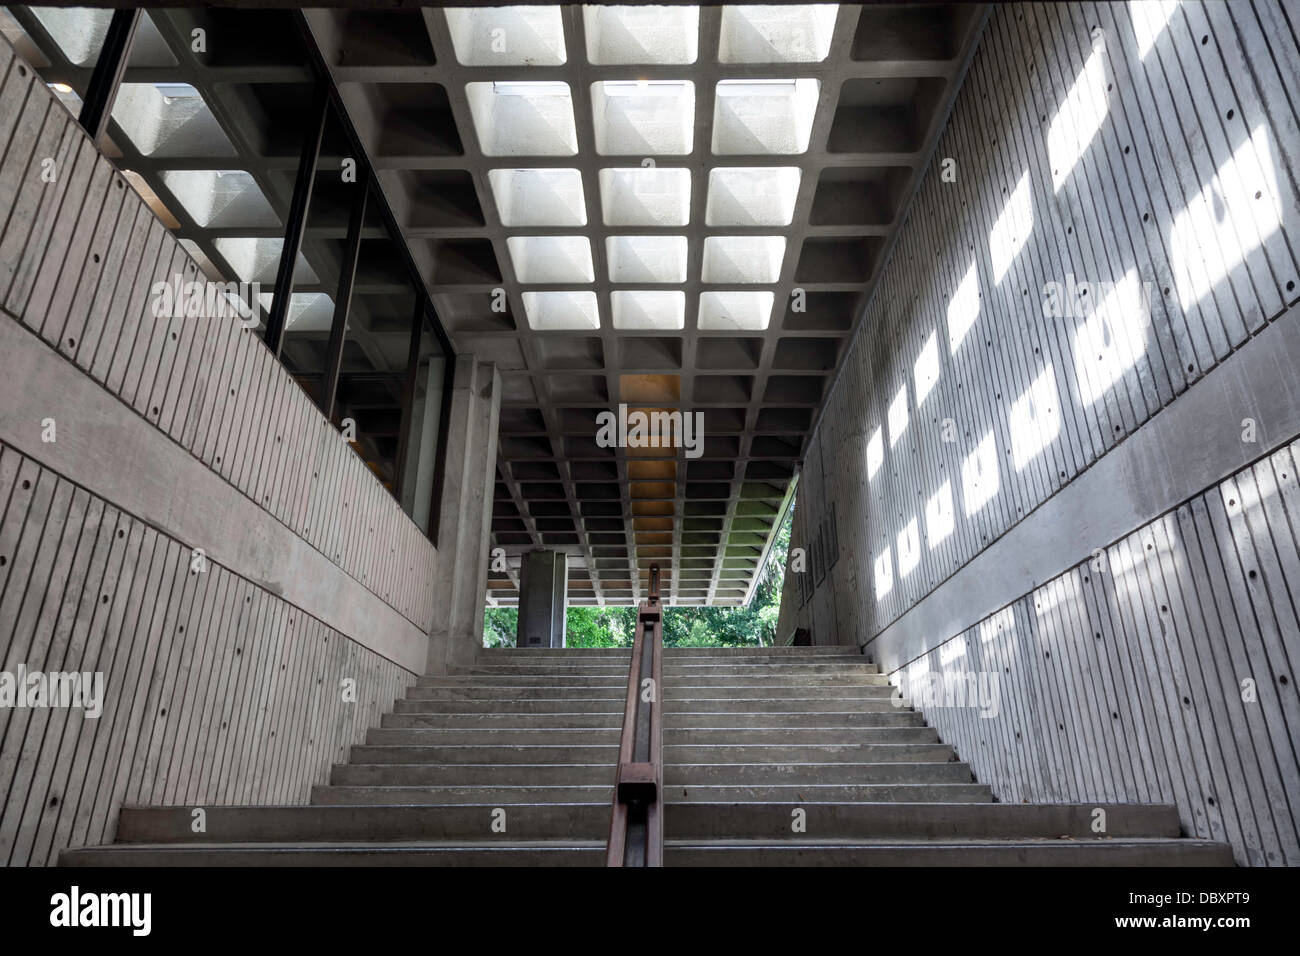 Public stairway in the J.C. Dickinson, Jr. Hall (circa 1970) designed by architect William Morgan. - Stock Image